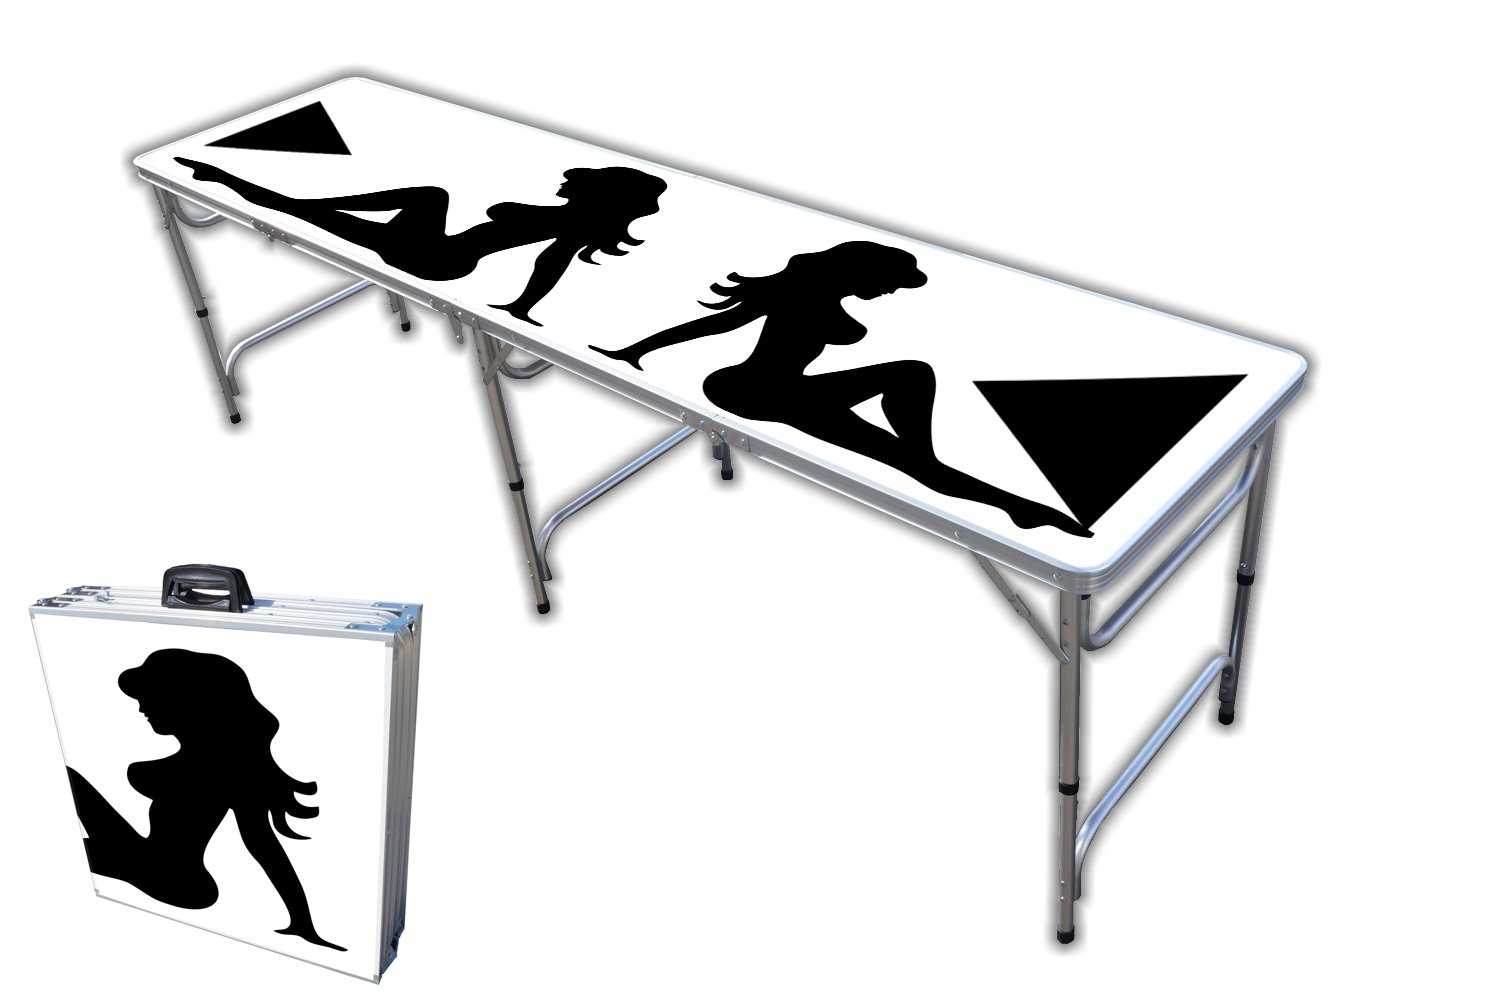 8-Foot Professional Beer Pong Table - Trucker Girl Graphic by PartyPongTables.com